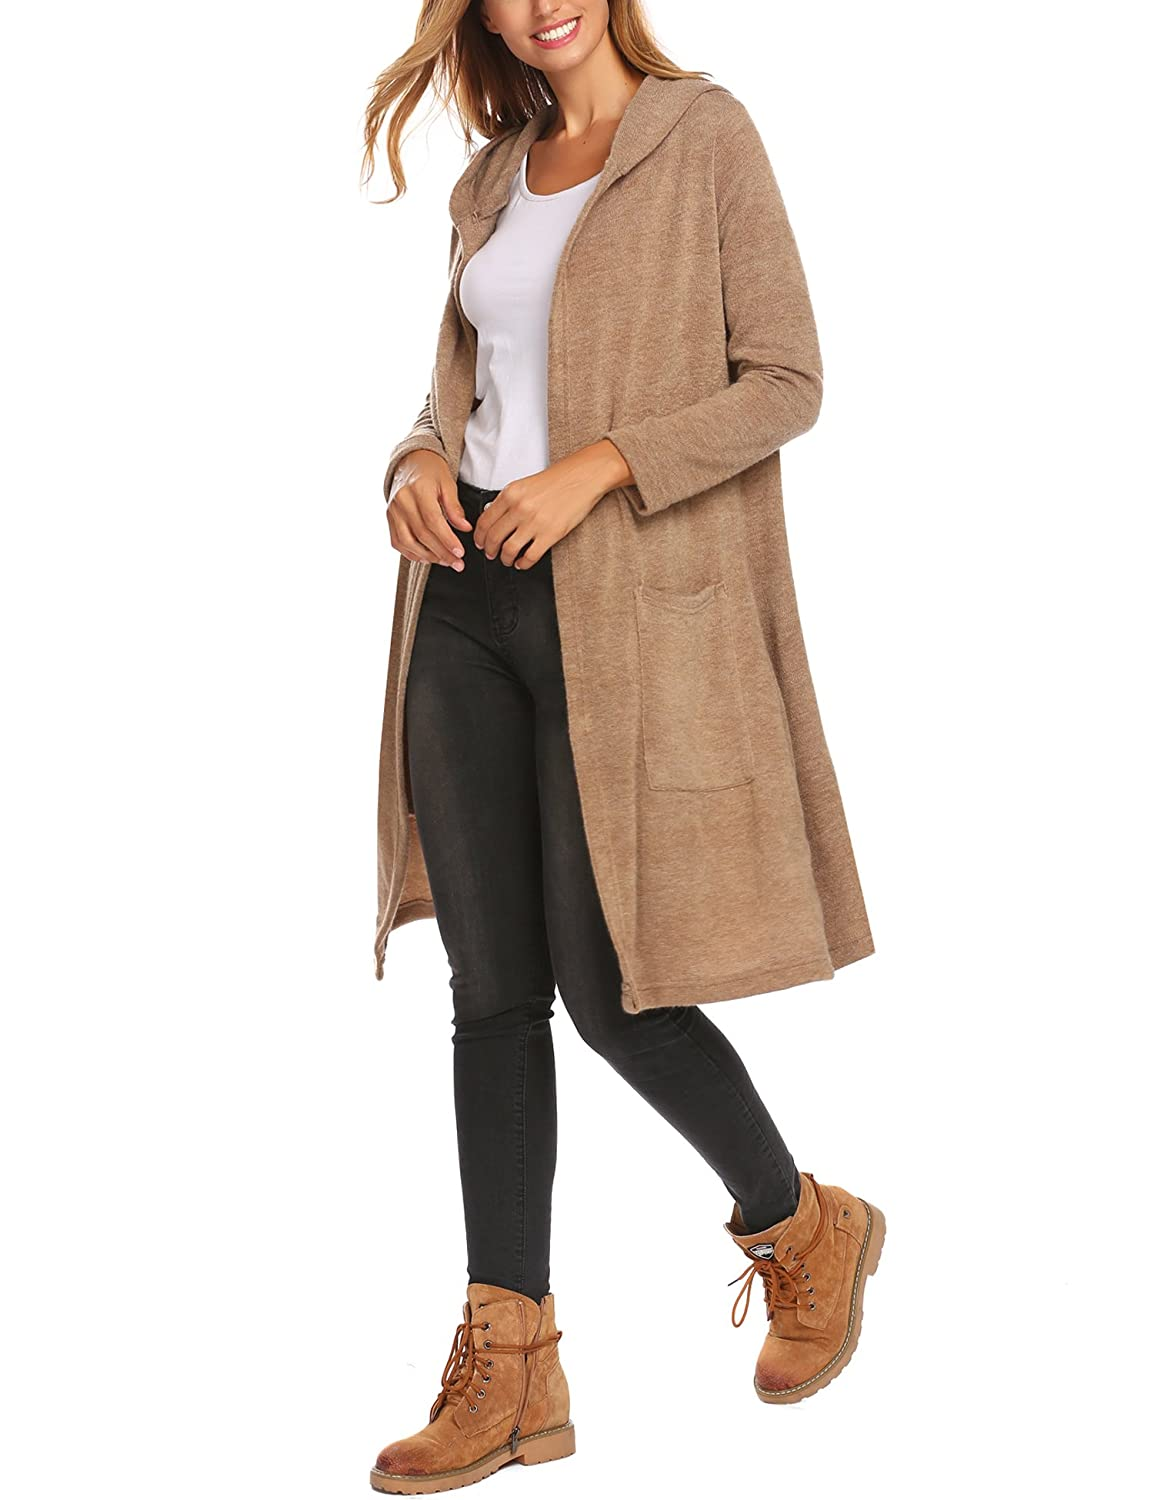 SummerRio Womens Casual Long Sleeved Open Front Breathable Cardigans with Pocket